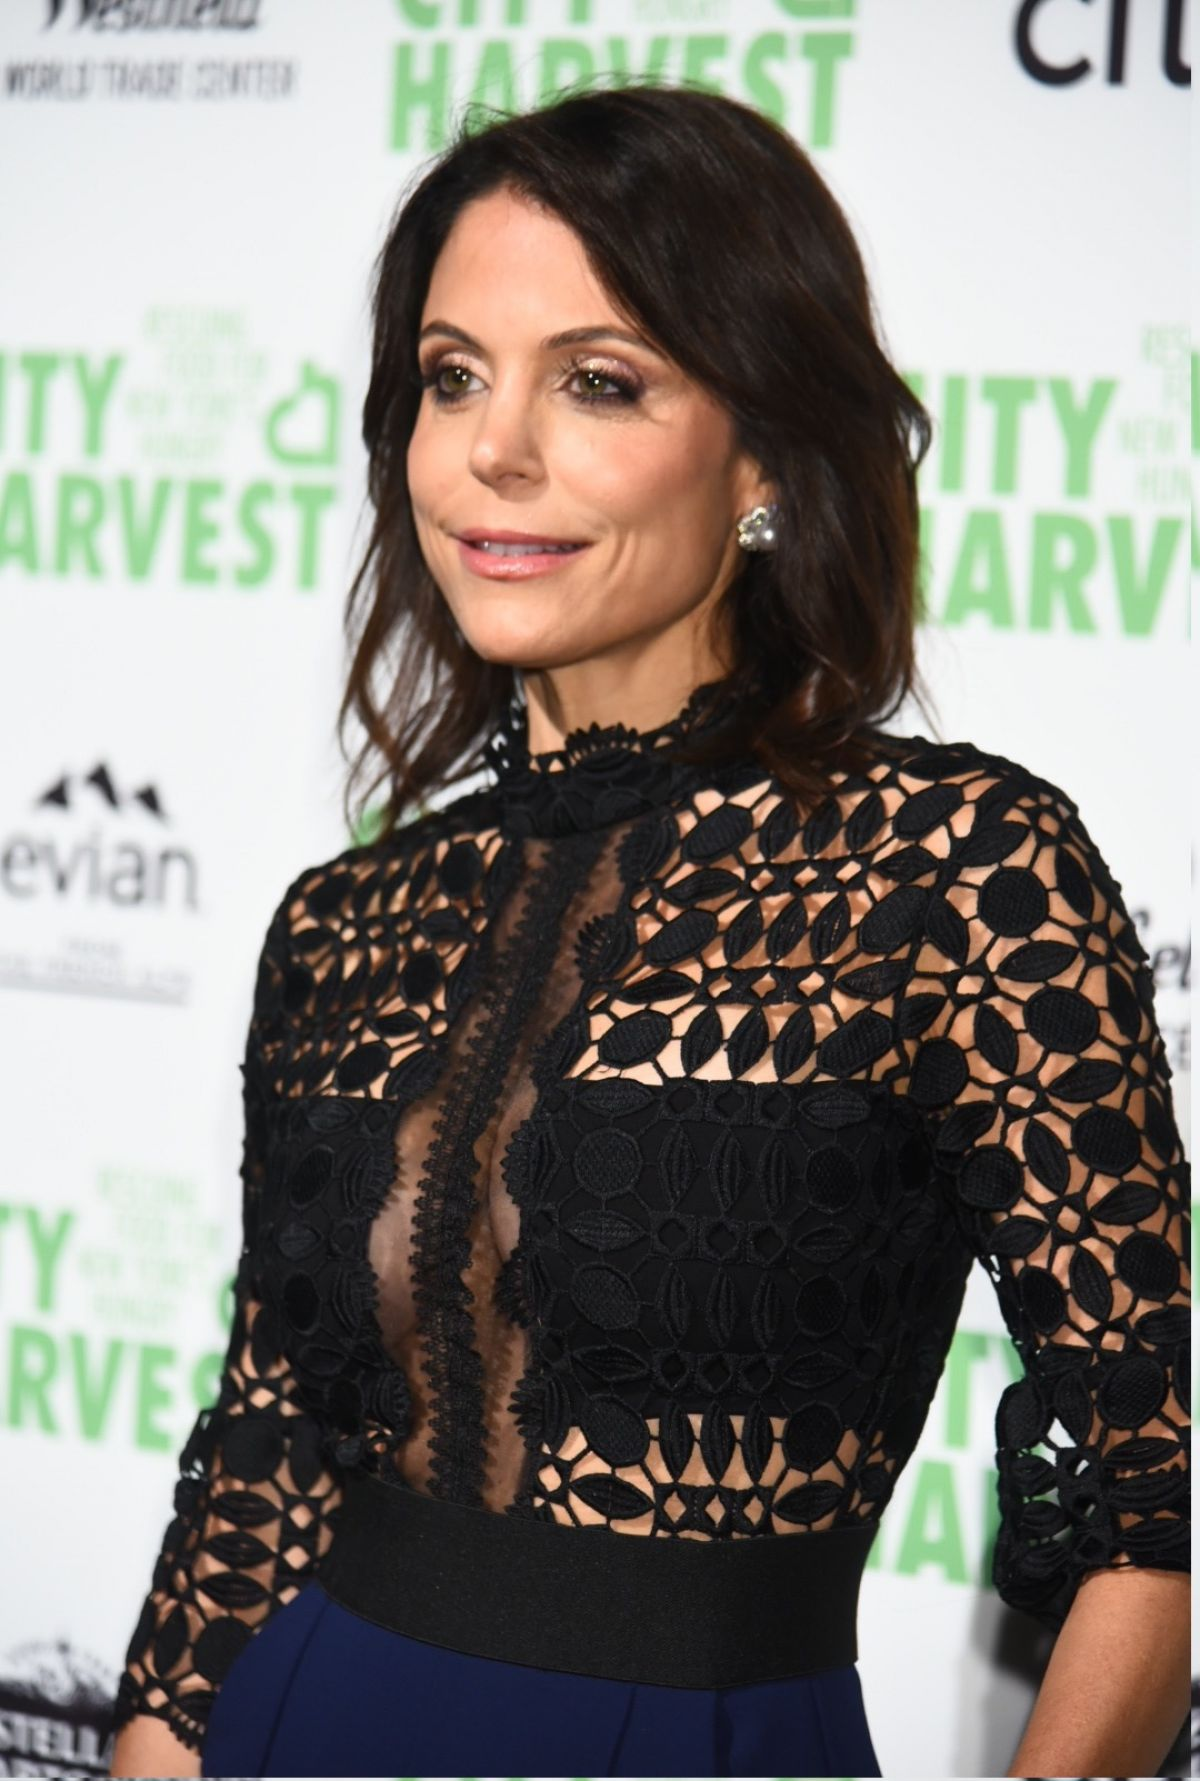 BETHENNY FRANKEL at City Harvest's 23rd Annual Gala in New York 04/25/2017